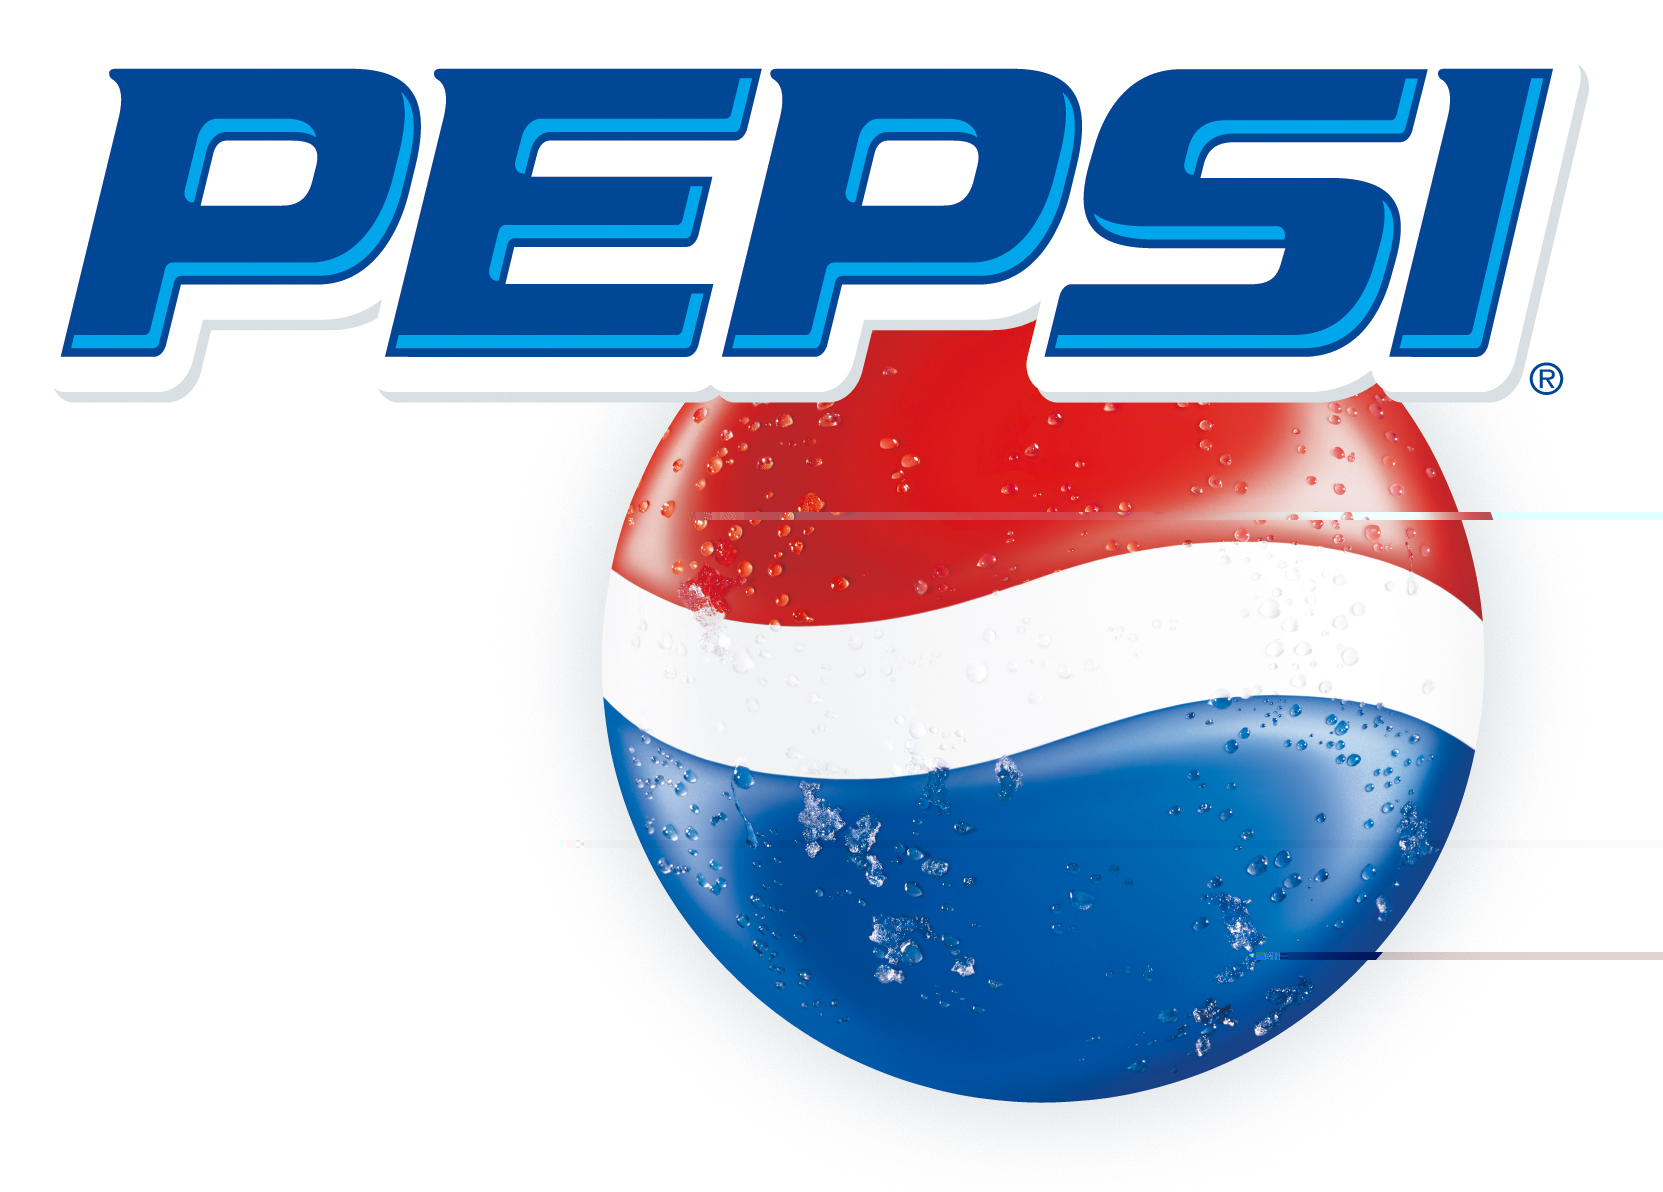 coca cola and pepsi The cola wars have been raging for decades, but which brand comes out on top today we analyze the market share of coke vs pespi on social.